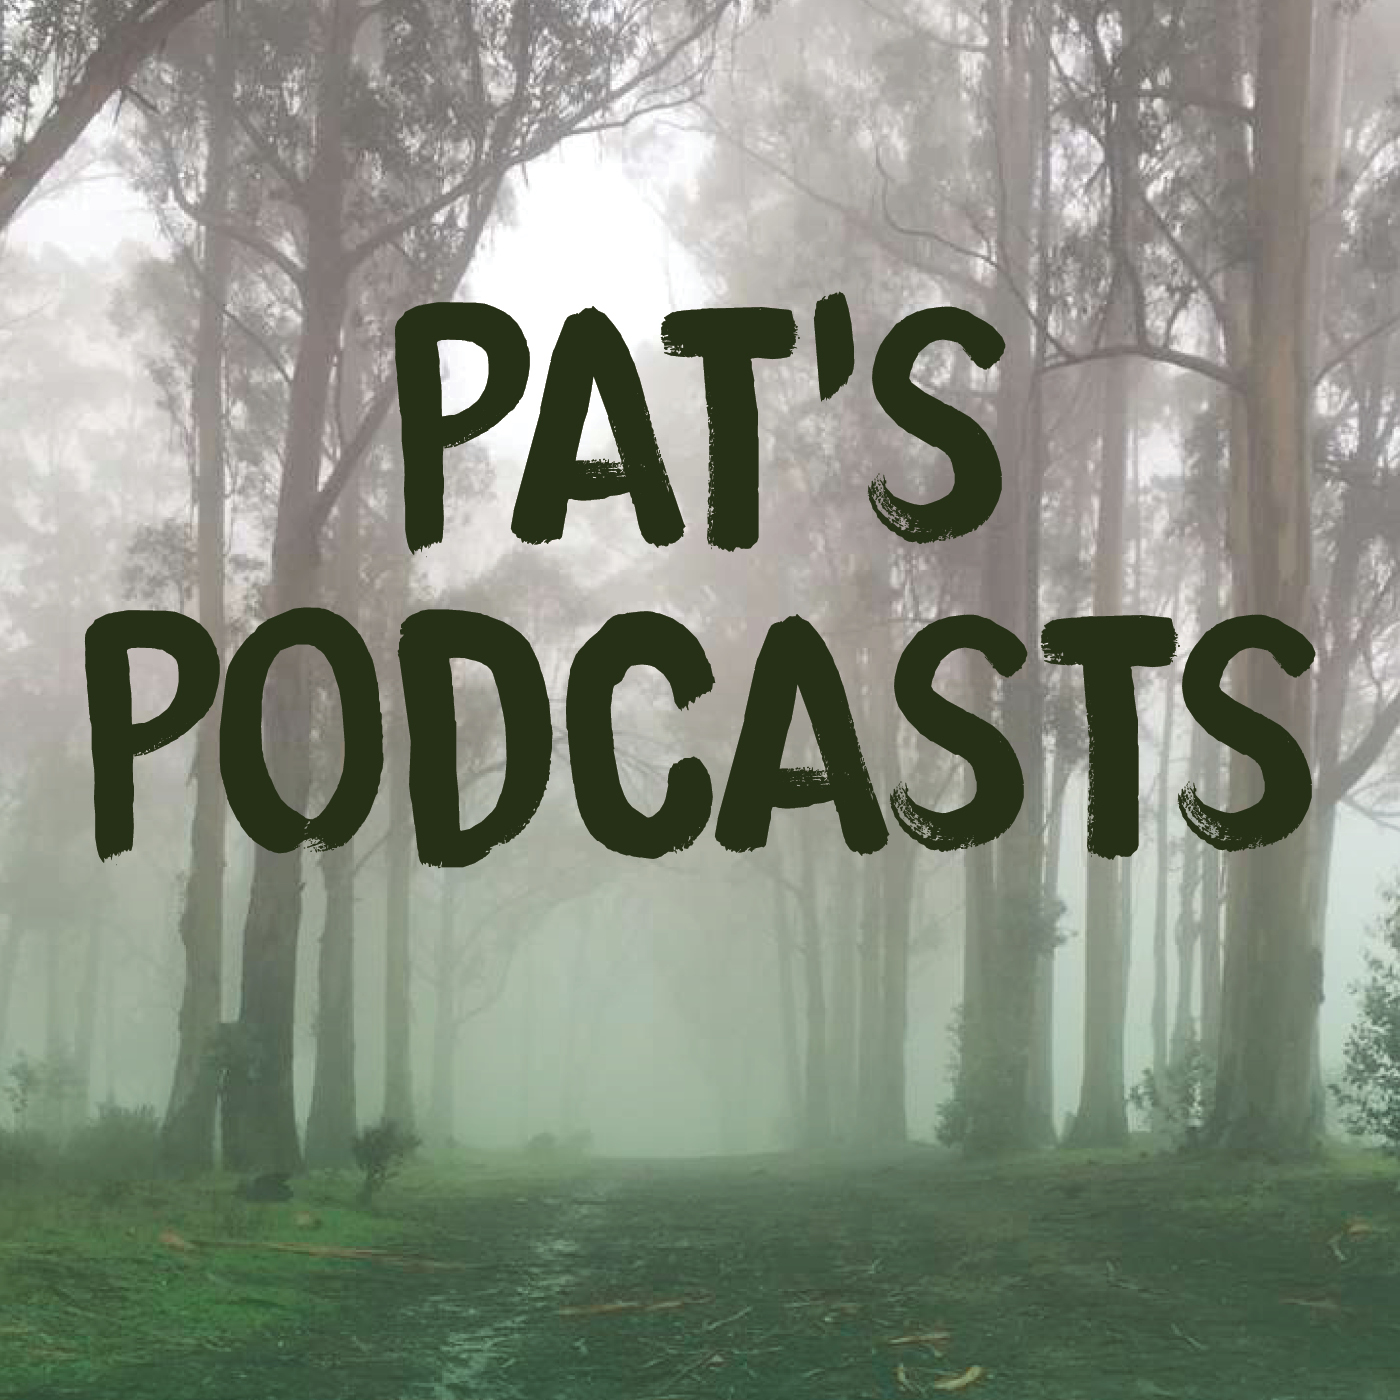 Pat's Podcasts  show art